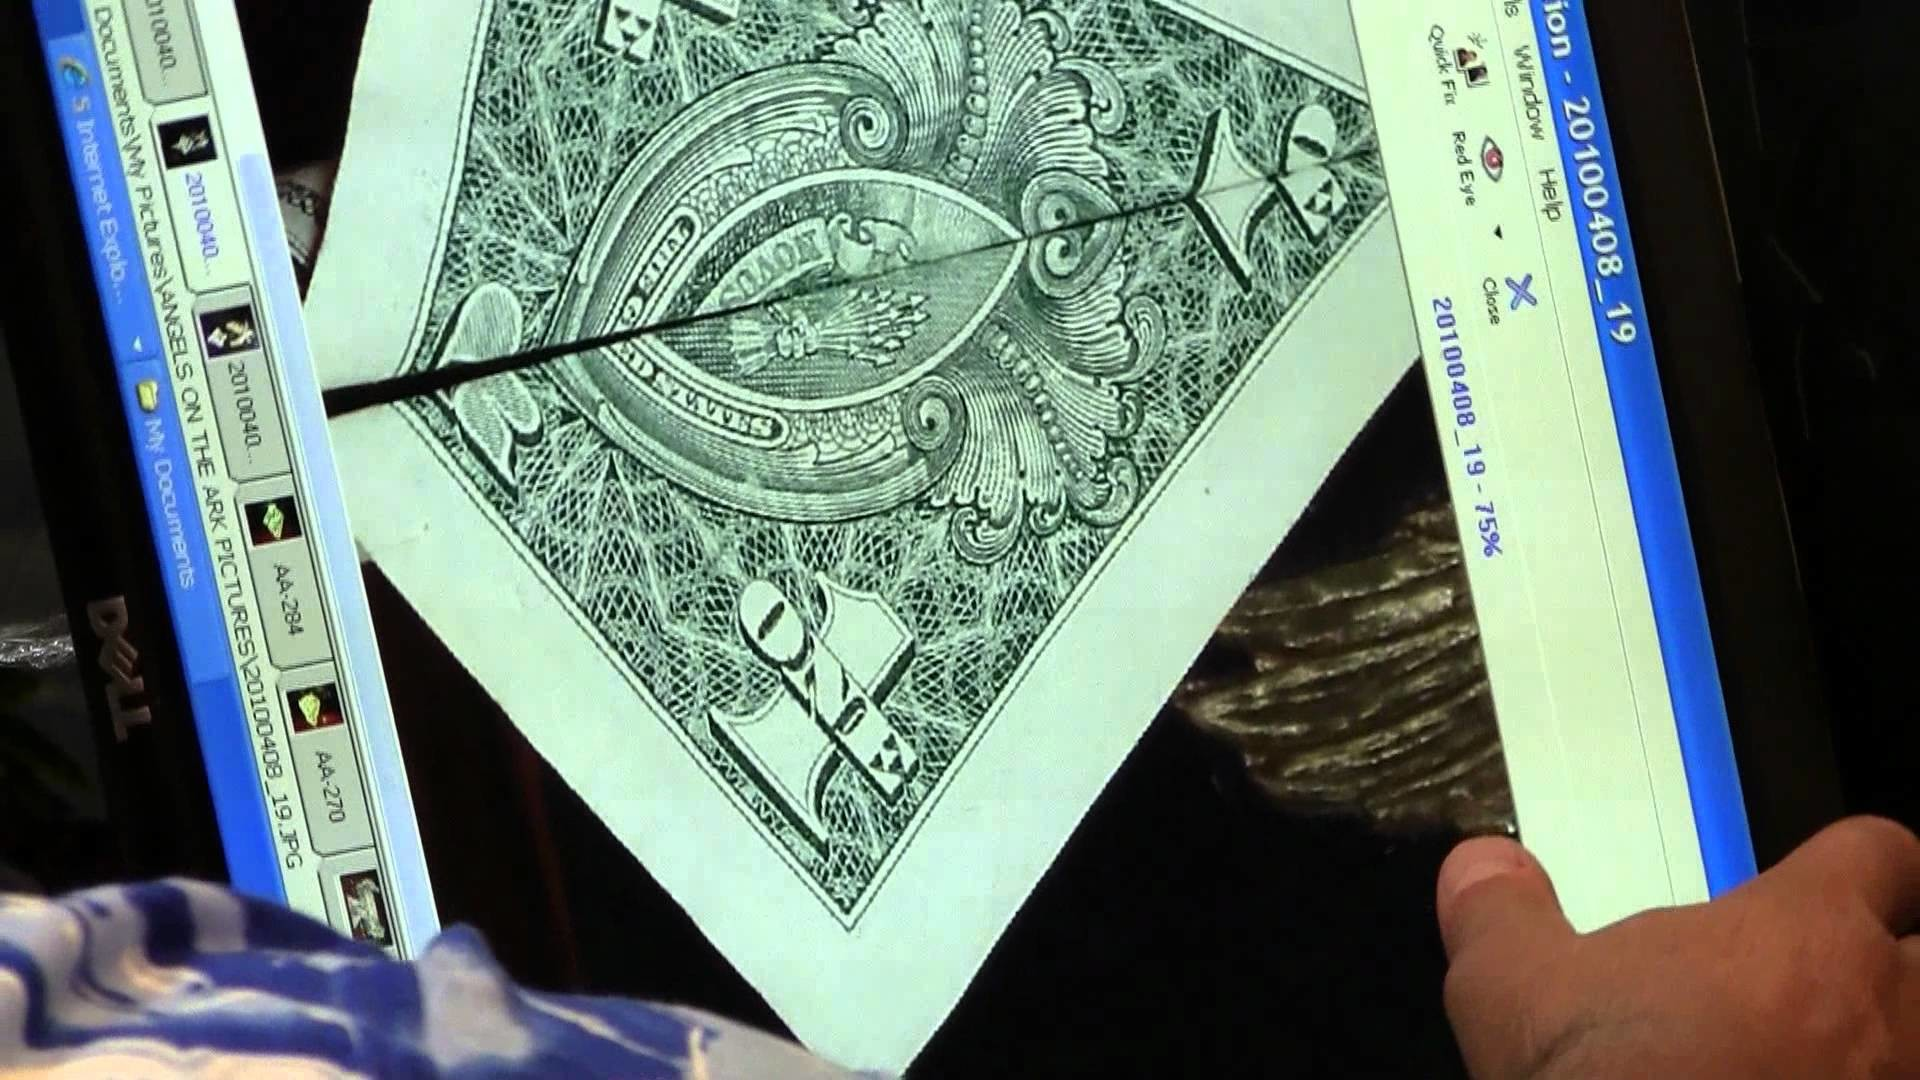 1920x1080 SACRED GEOMETRY & A 300 MILLION YEAR OLD VAMPIRE SQUID ON $1BILL  20110710161402